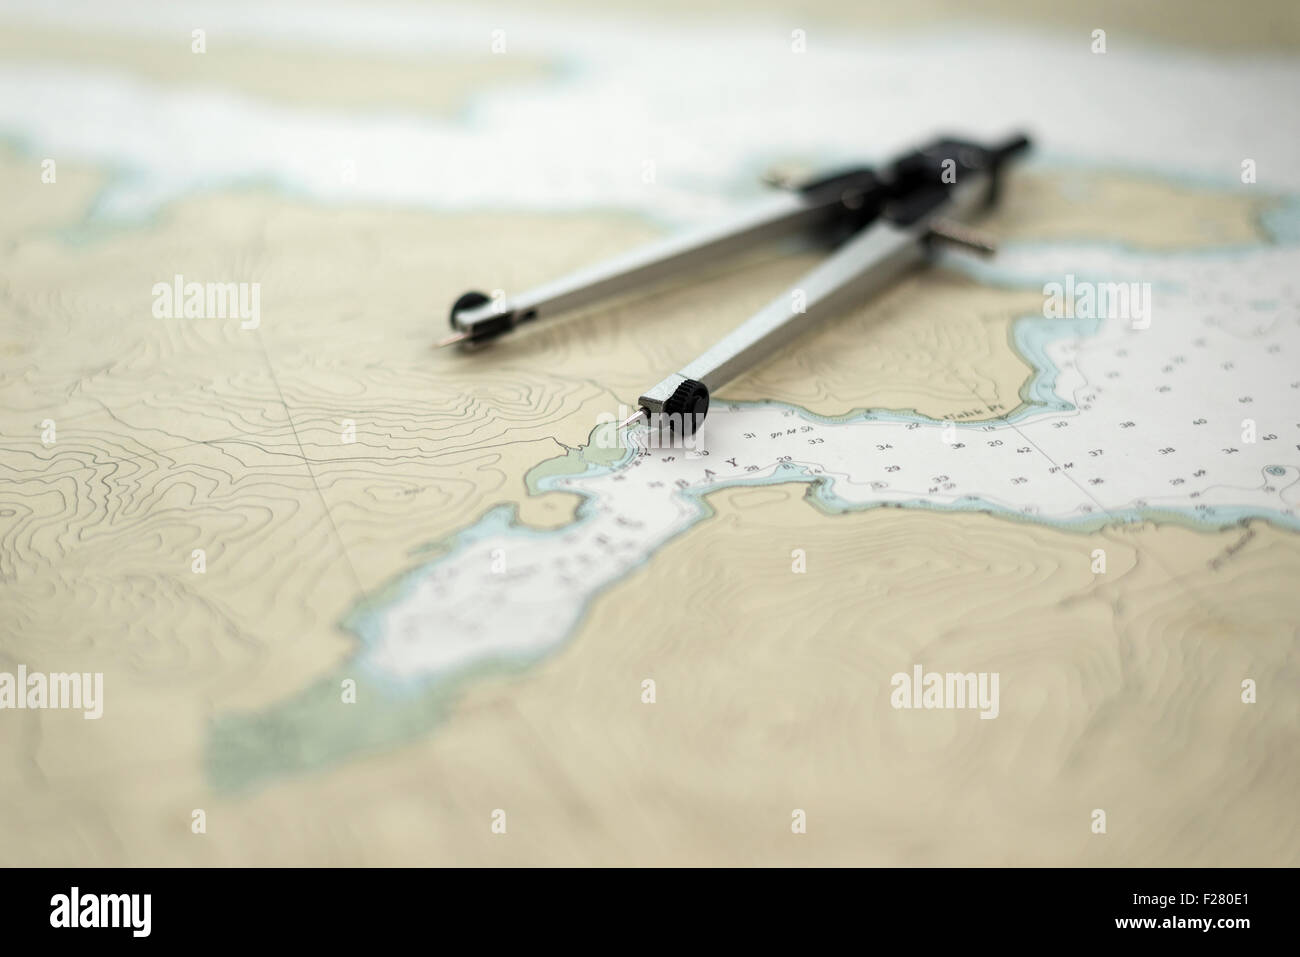 Divider caliper, also known as a compass, on a nautical chart of part of Southeast Alaska. - Stock Image